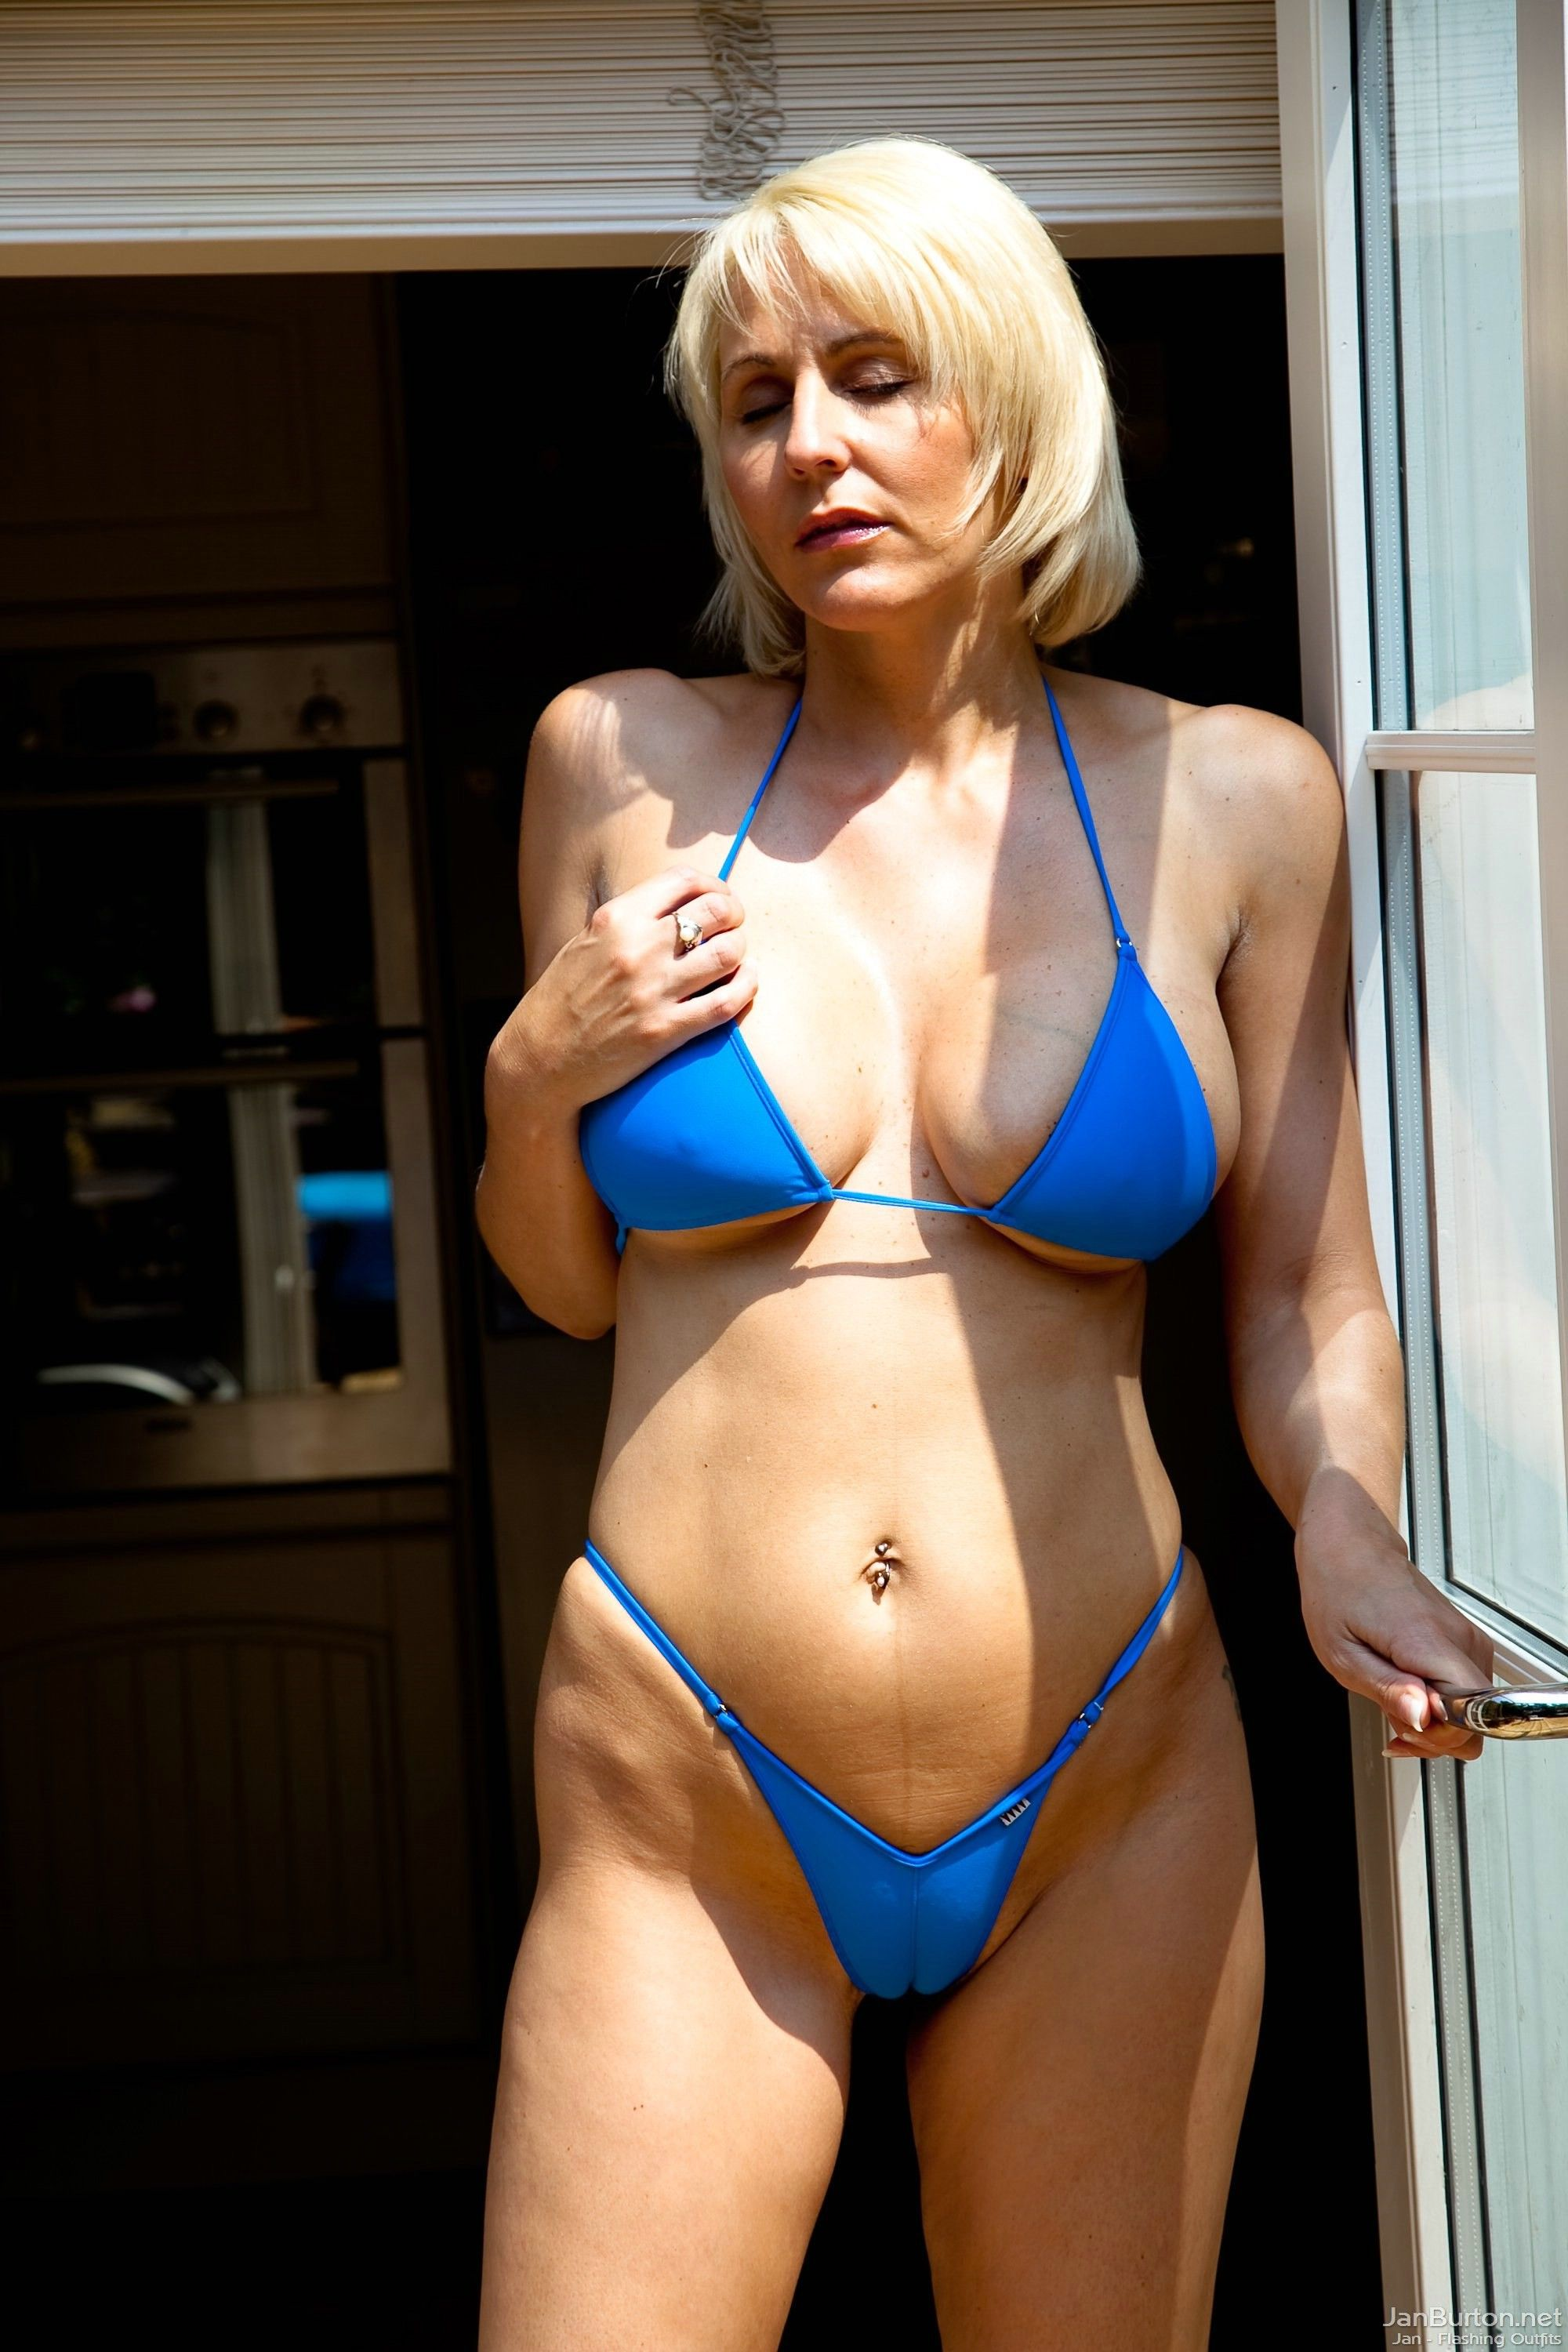 Can recommend mature woman blue bikini share